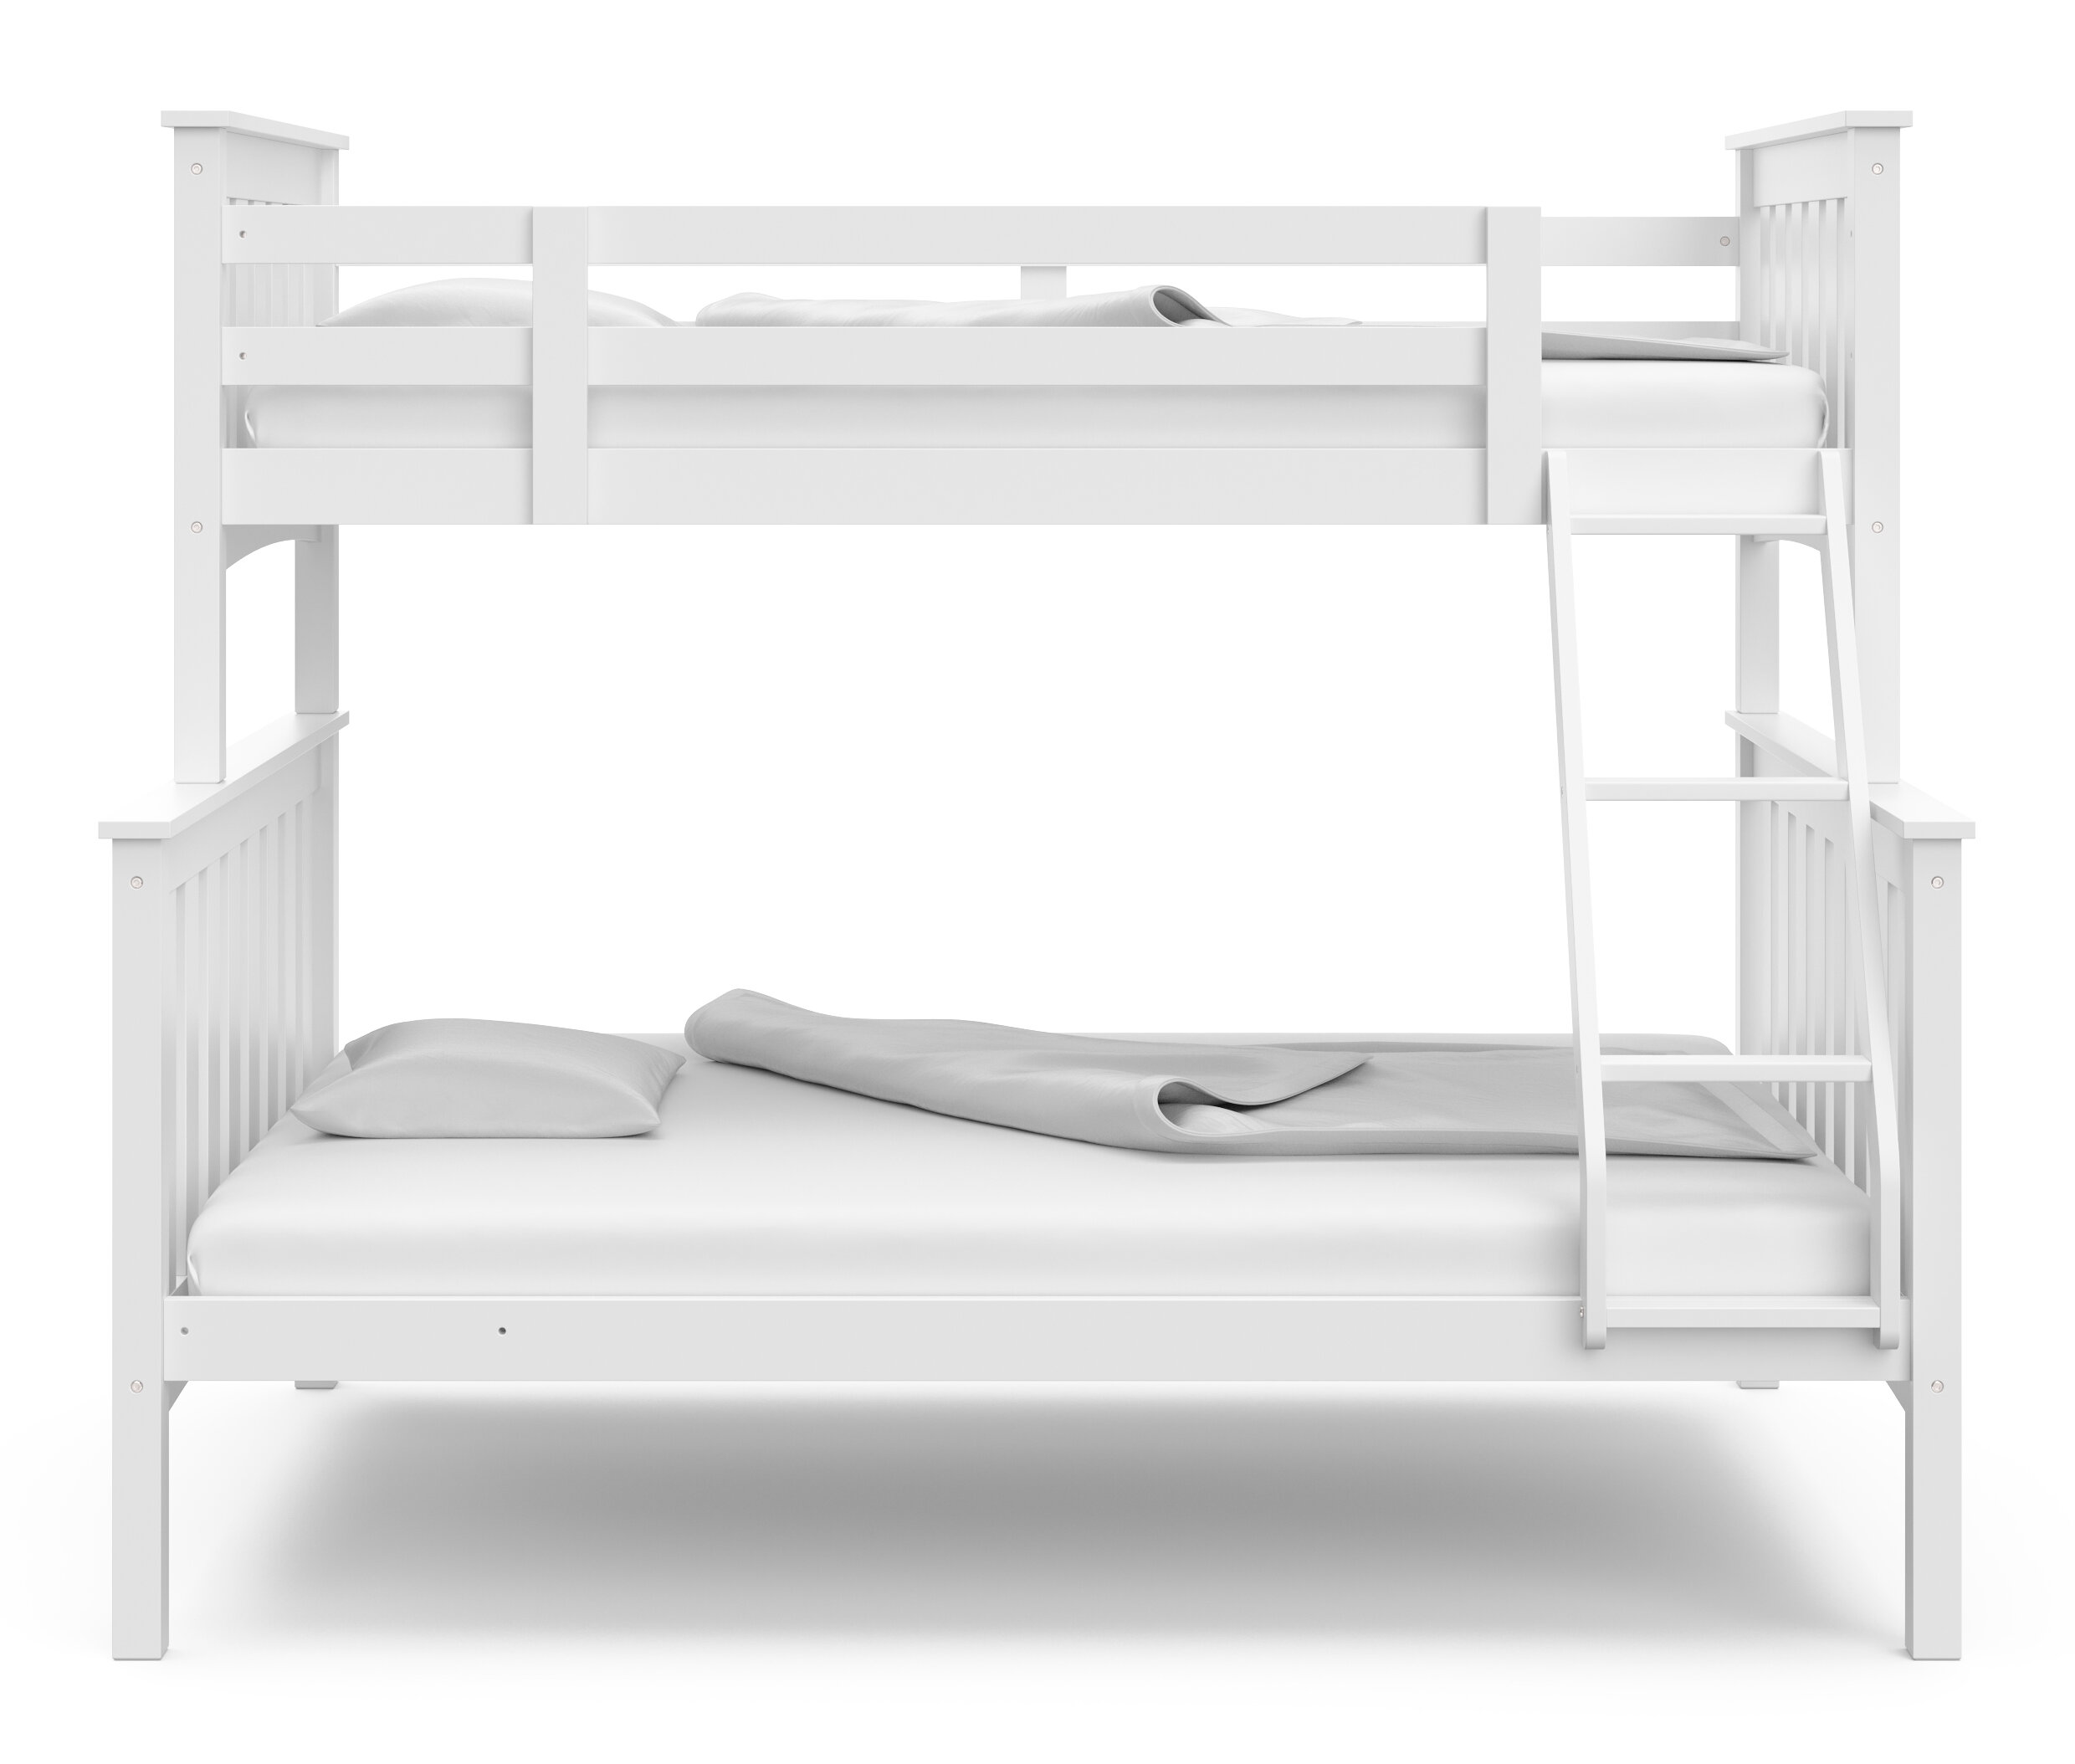 Thomasvillekids Twin Over Full Bunk Bed Reviews Wayfair